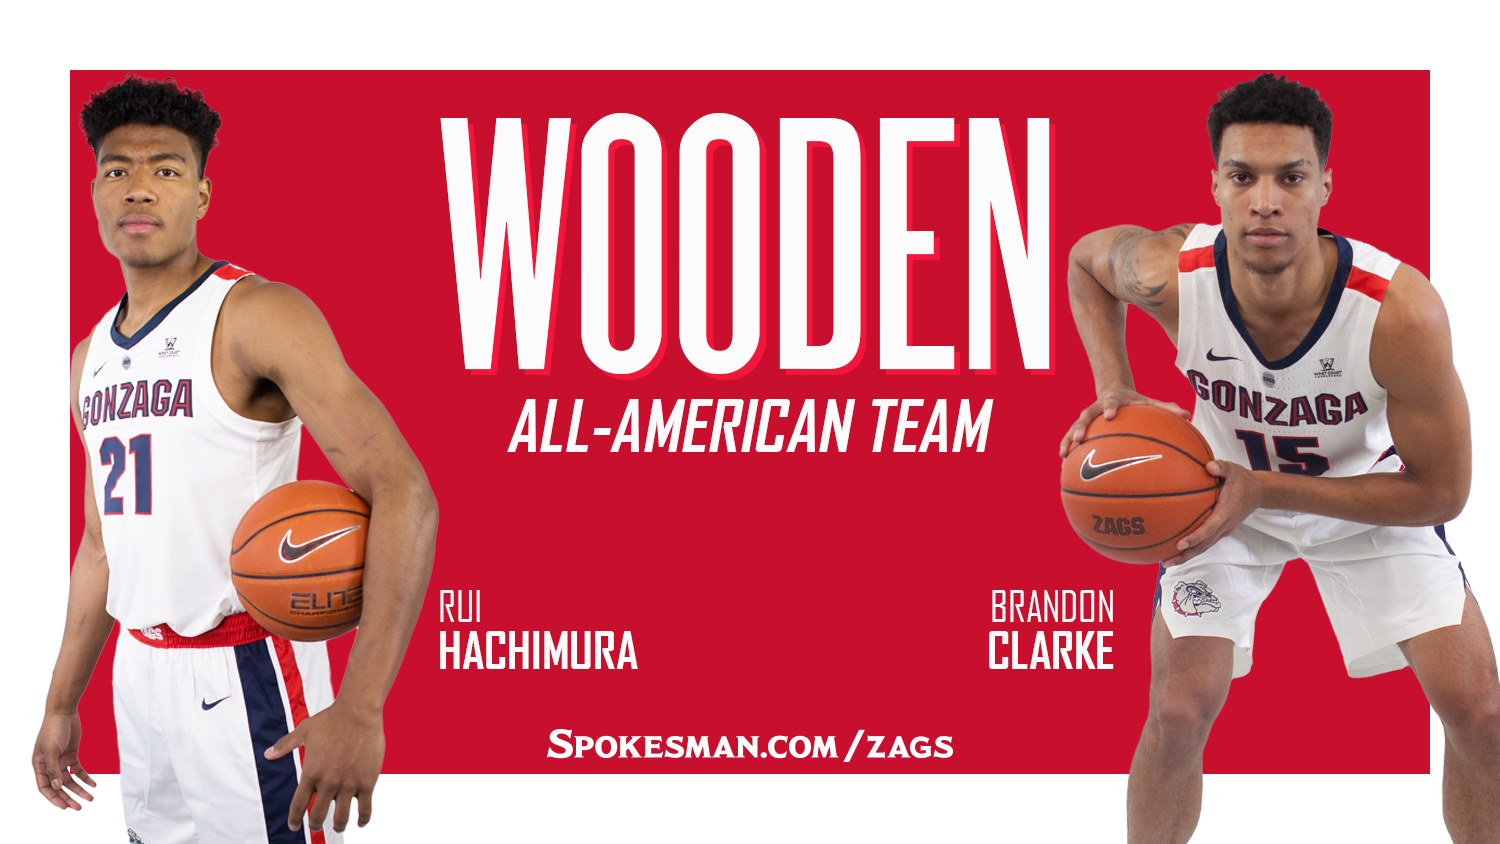 Gonzagas Rui Hachimura Brandon Clarke Named To Wooden Award All